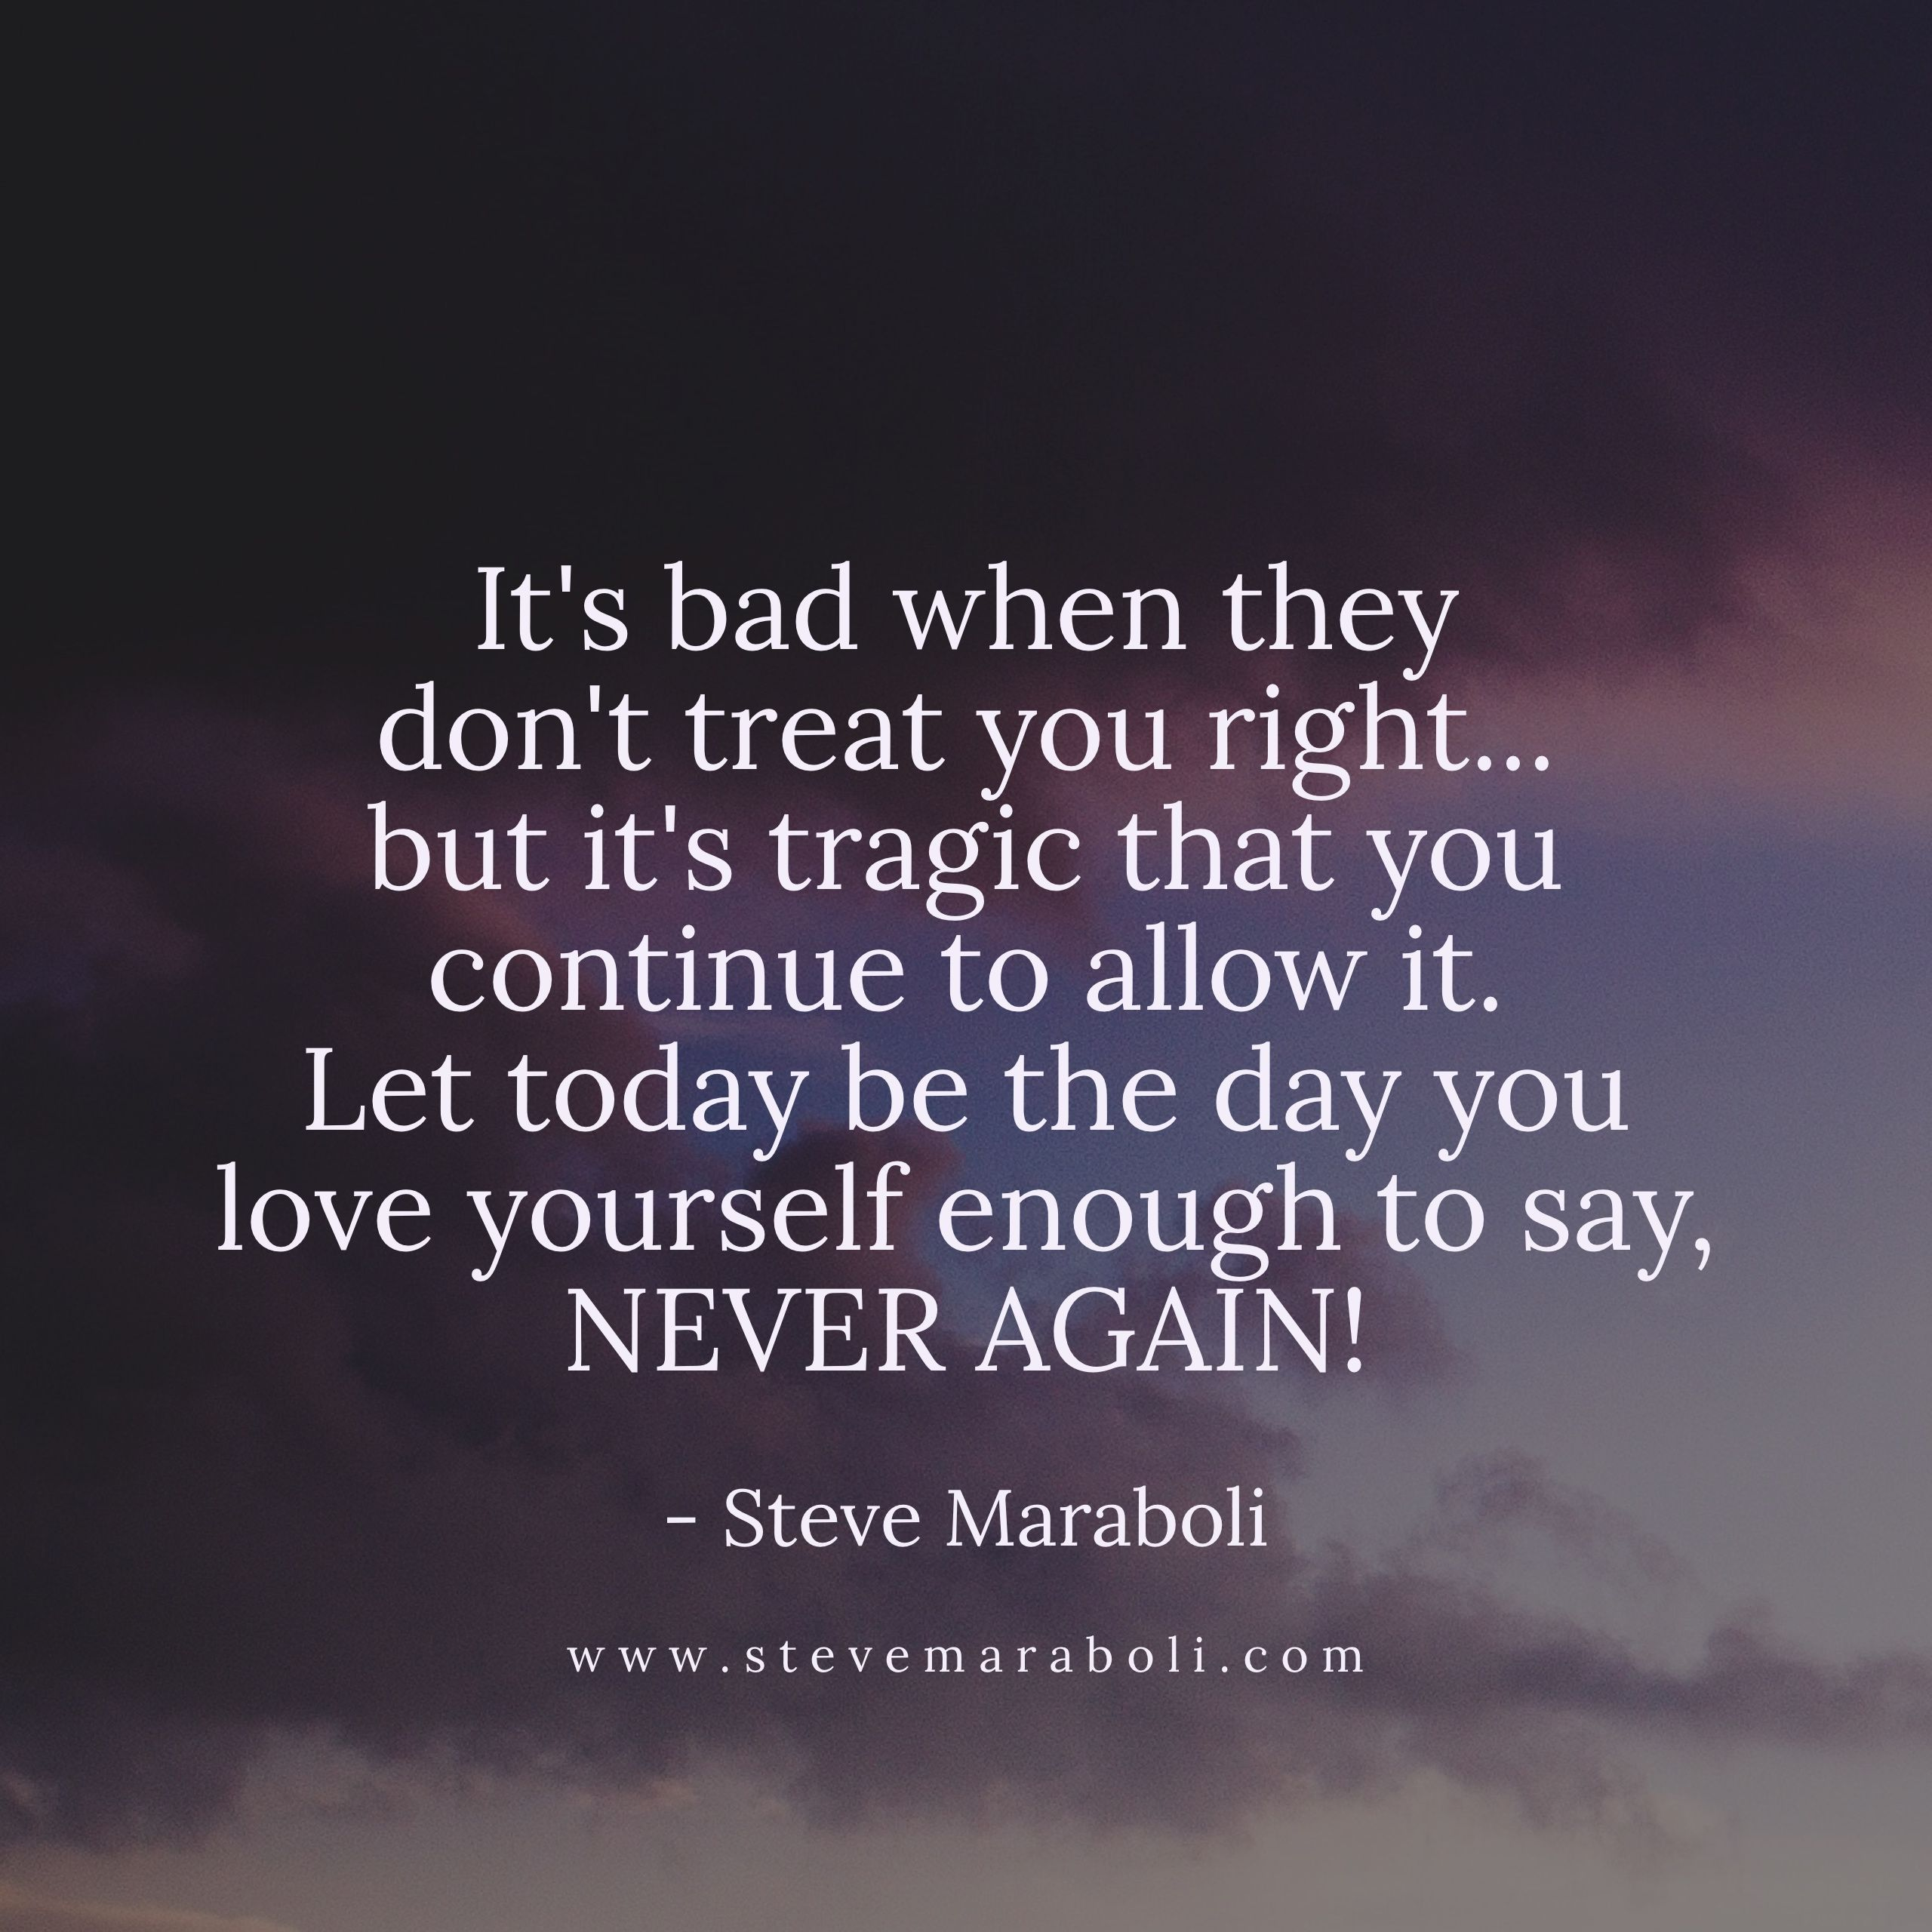 It S Bad When They Don T Treat You Right But It S Tragic That You Continue To Allow It Let Today Be Th Disrespect Quotes Done Quotes Quotes About Moving On